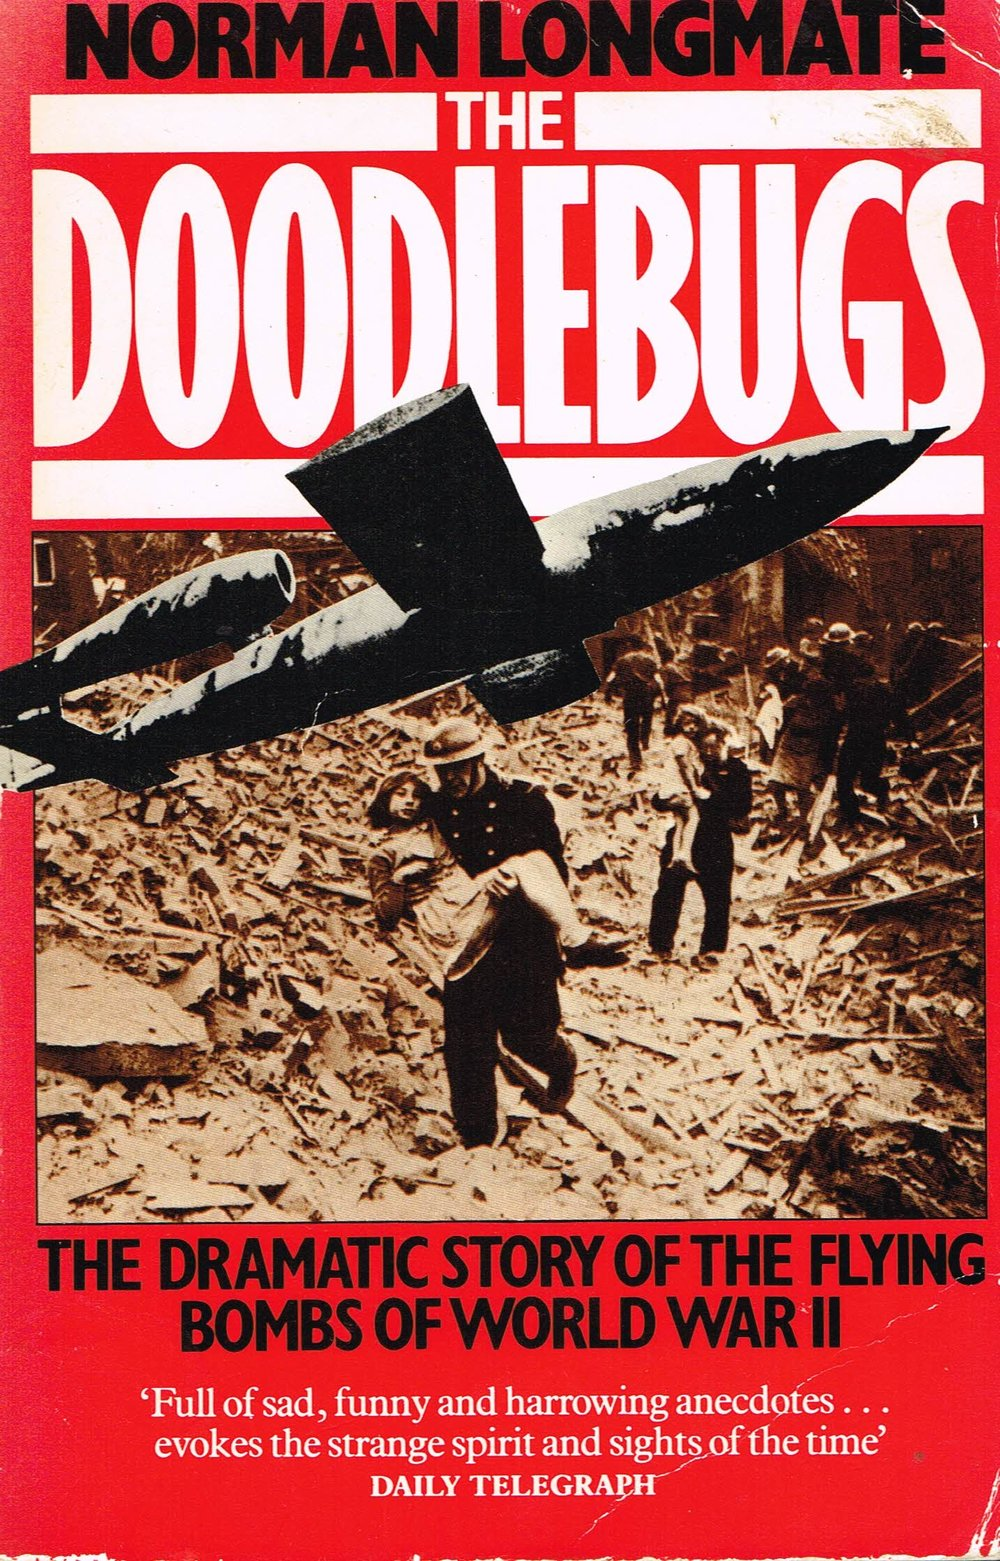 The Doodlebugs : The dramatic story of the flying bombs of World War II Norman Longmate